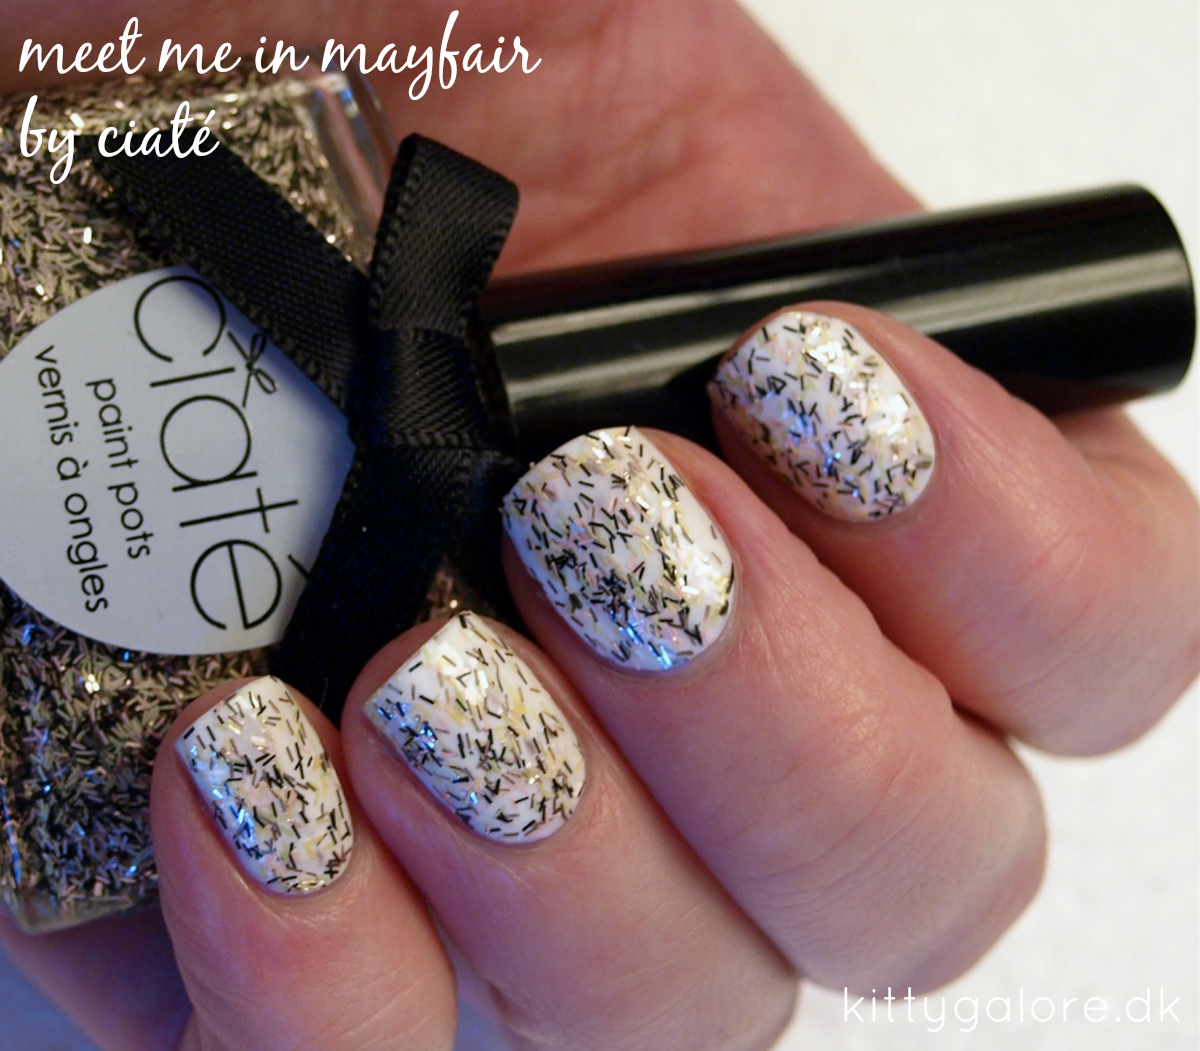 ciaté tweed meet-me-in-mayfair-ciate-nail-polish-1-coat-neglelak